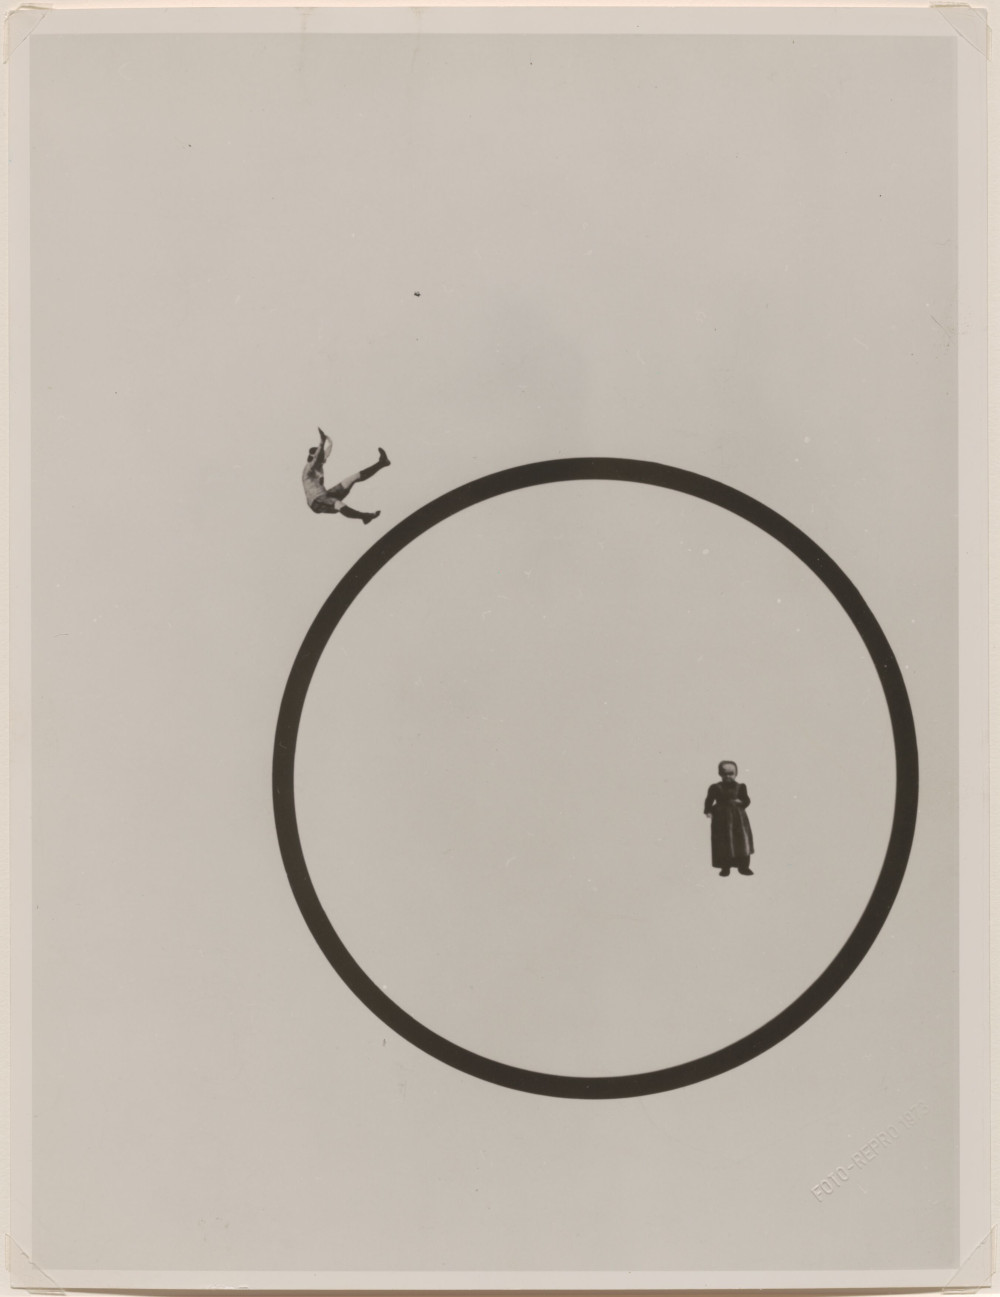 László Moholy-Nagy , Wie bleibe ich jung und schön? (How Do I Stay Young and Beautiful?), 1925 (printed 1973). Photoplastic 29 x 22.2 cm / 11 3/8 x 8 3/4 in © the Estate of László Moholy-Nagy / Artists Rights Society (ARS), New York / VG Bild-Kunst, Bonn. Courtesy of the Estate of László Moholy-Nagy